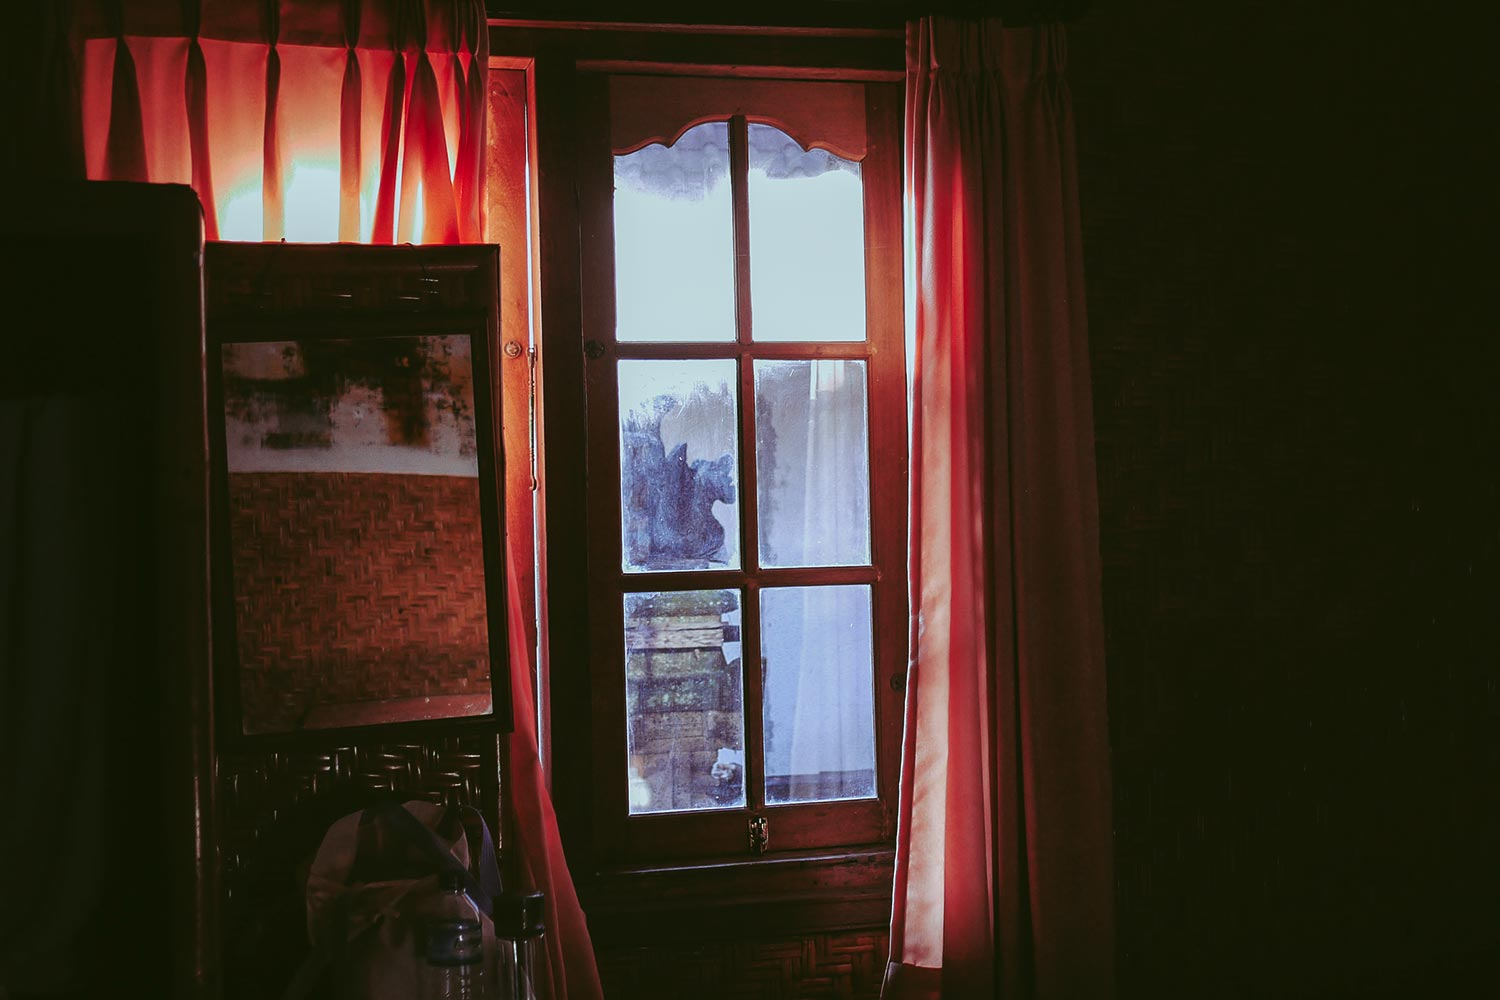 Window of my room